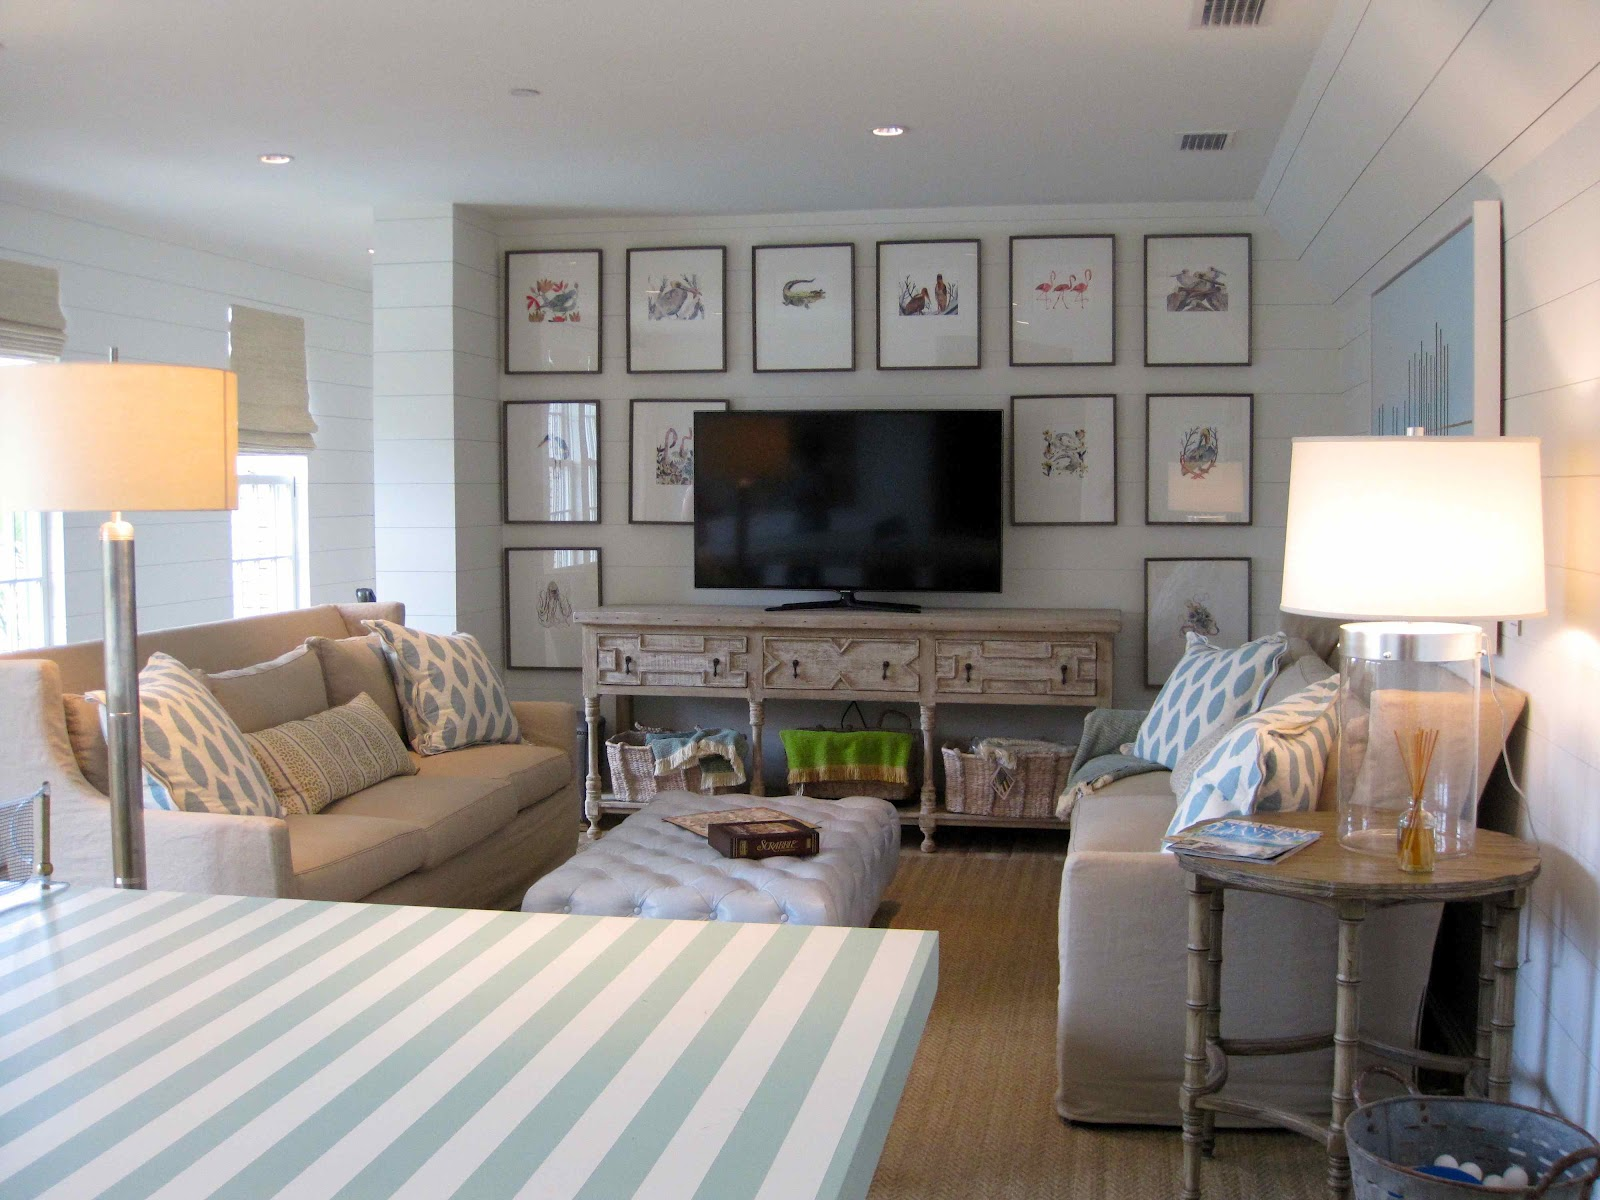 Tour of coastal living 39 s ultimate beach house part 2 driven by decor - Beach design living rooms ...